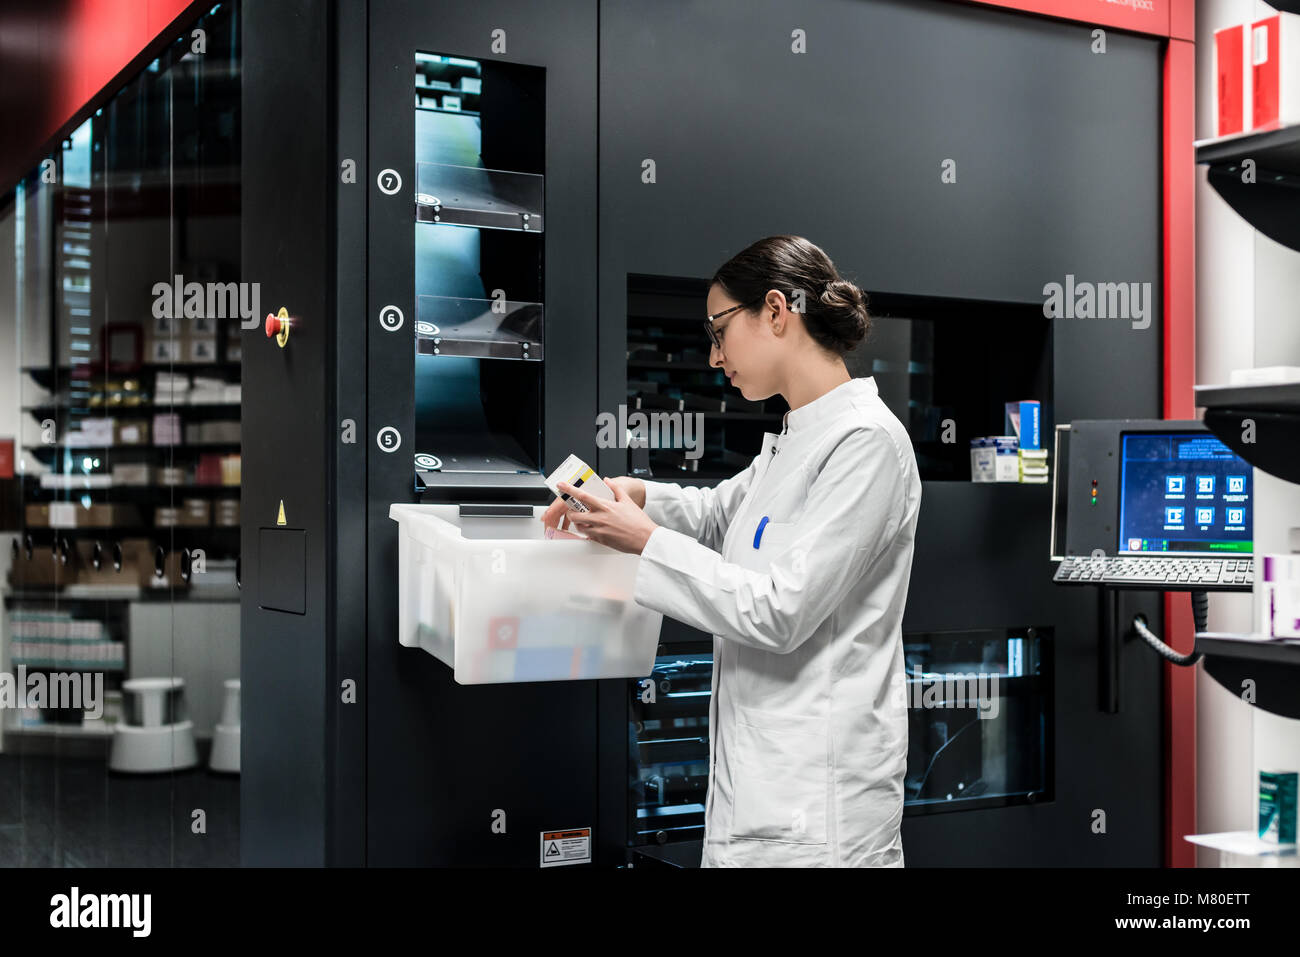 Pharmacist using a computer while managing the drug stock - Stock Image